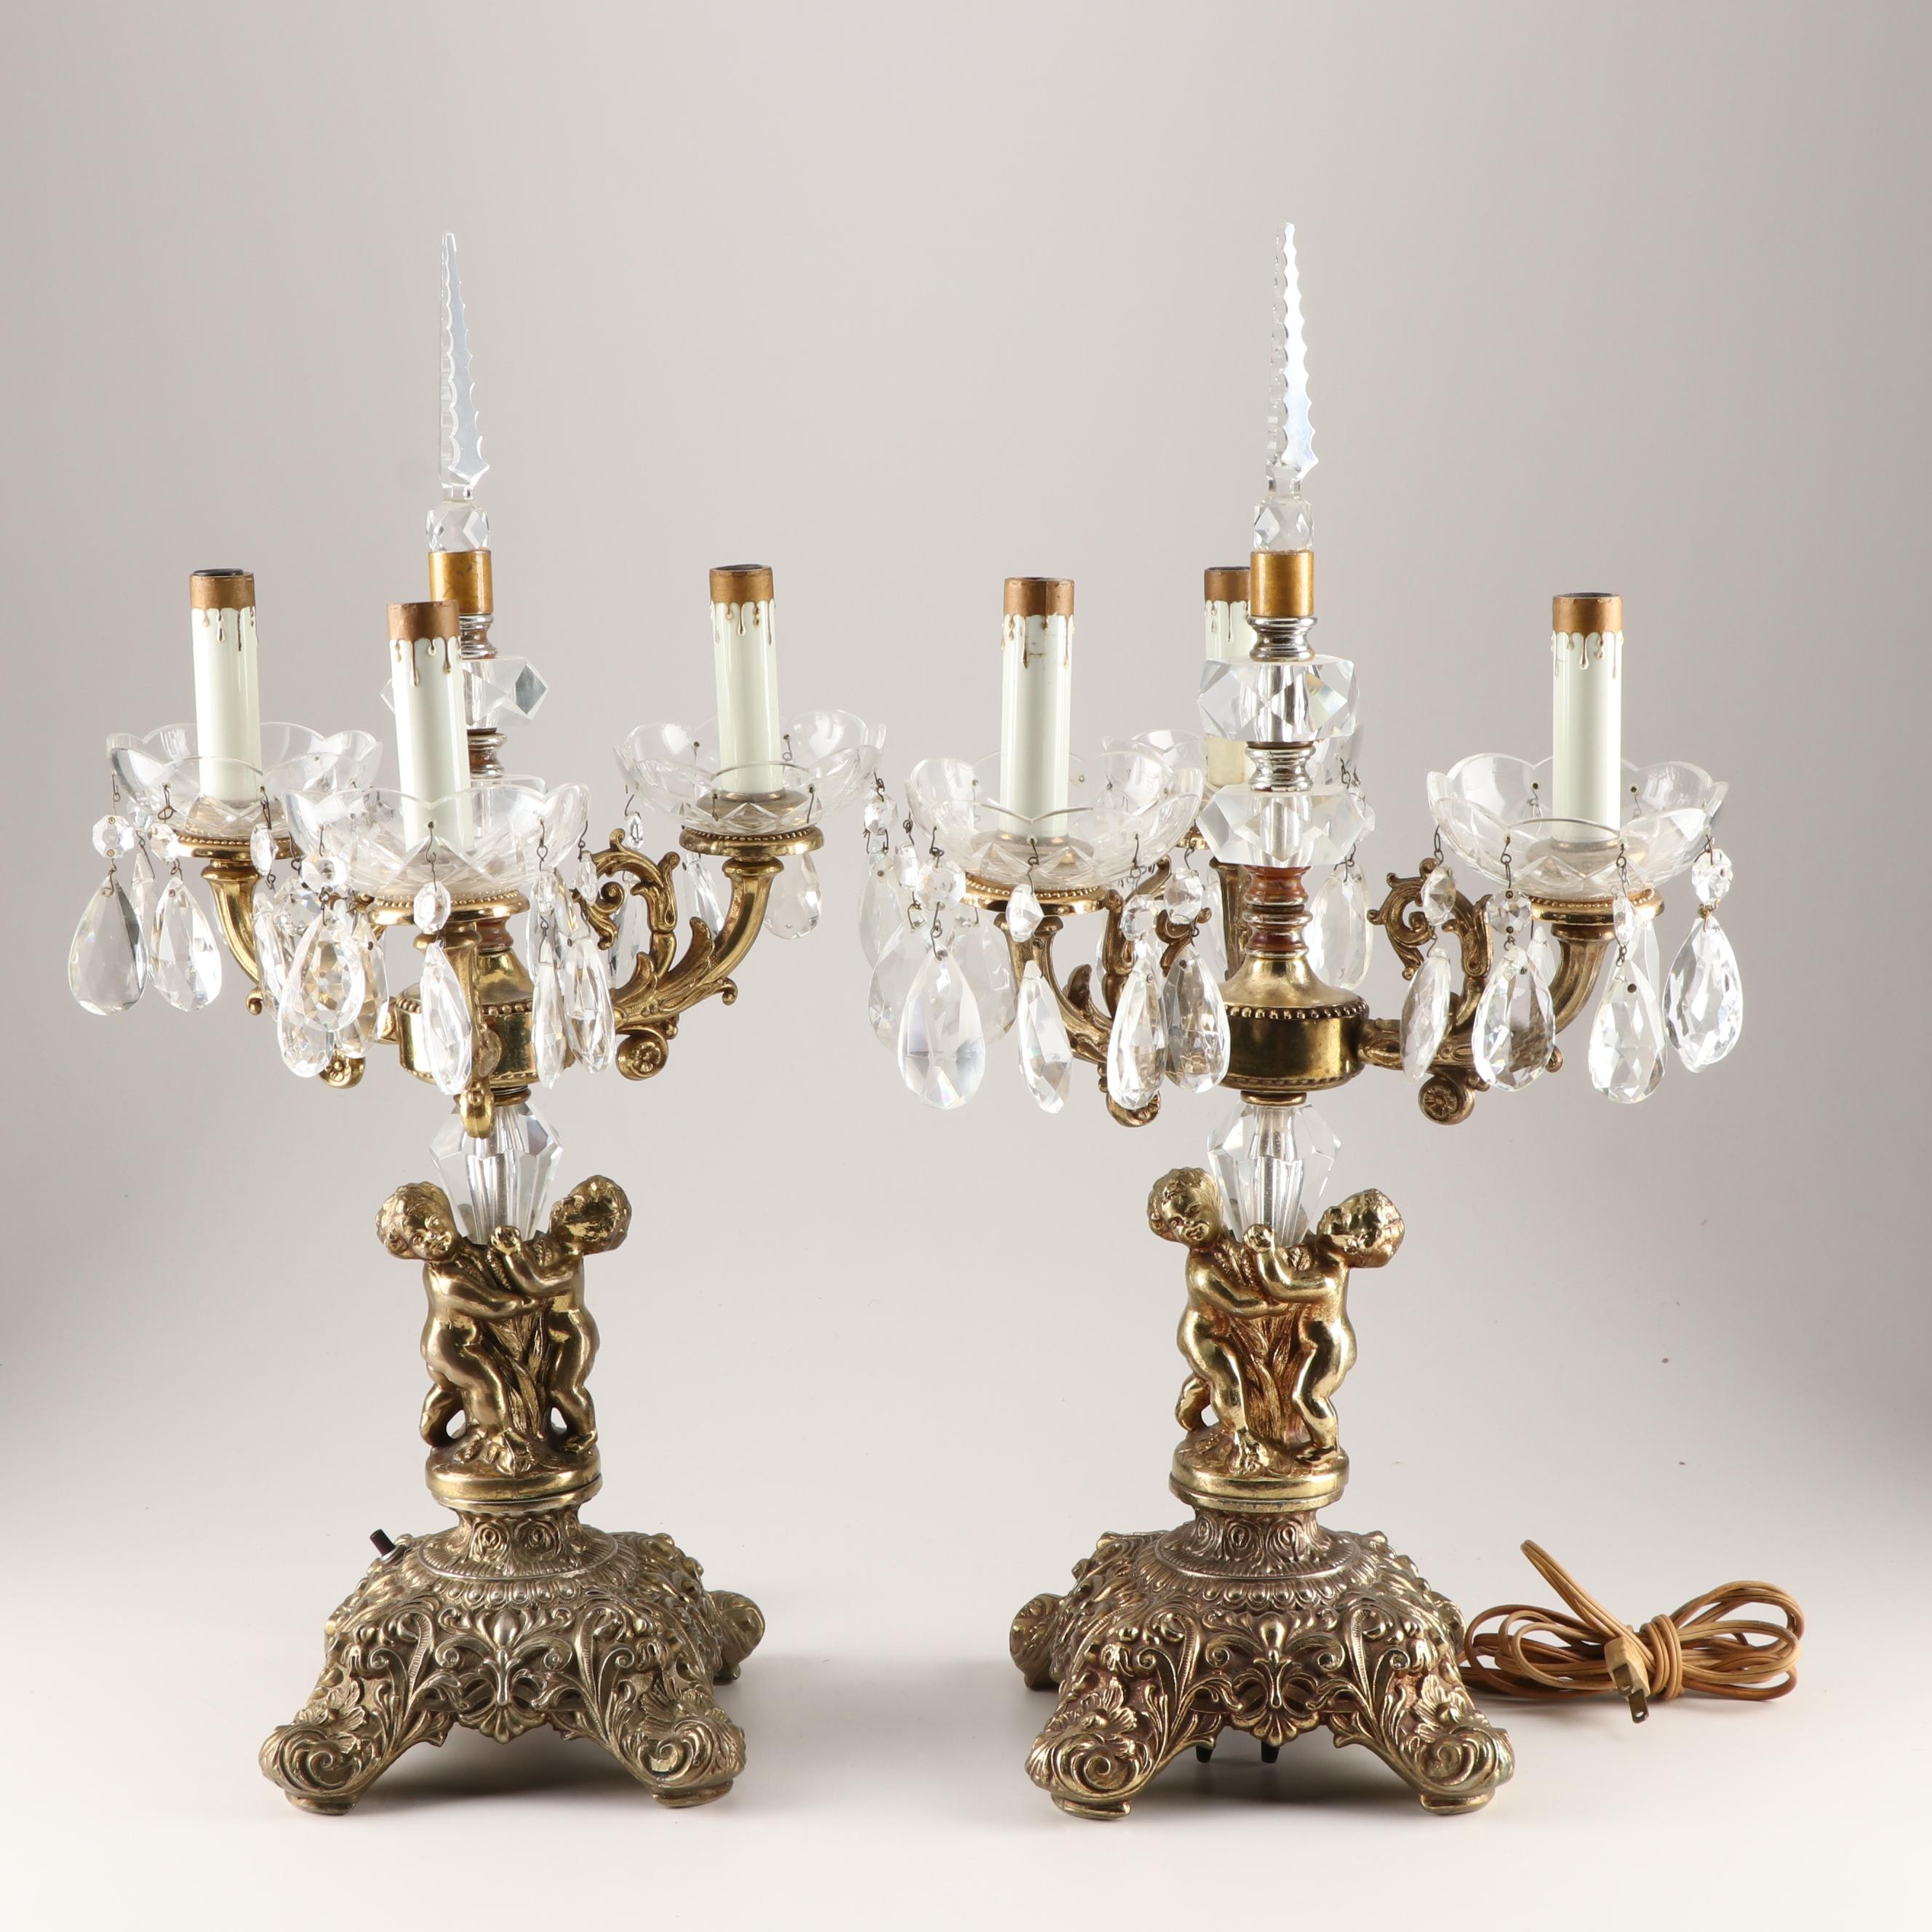 Hollywood Regency Style Cherub Brass and Glass Candelabra Table Lamps